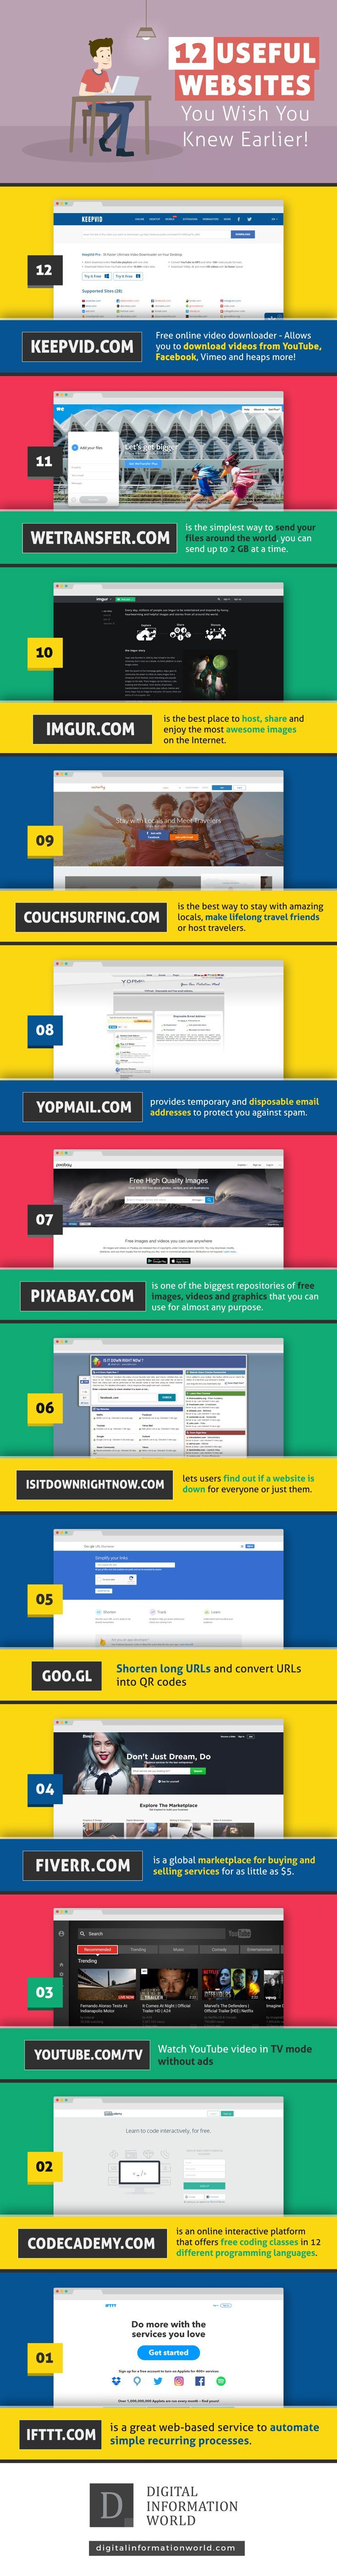 25 Useful Websites You've Probably Never Heard Of - infographic